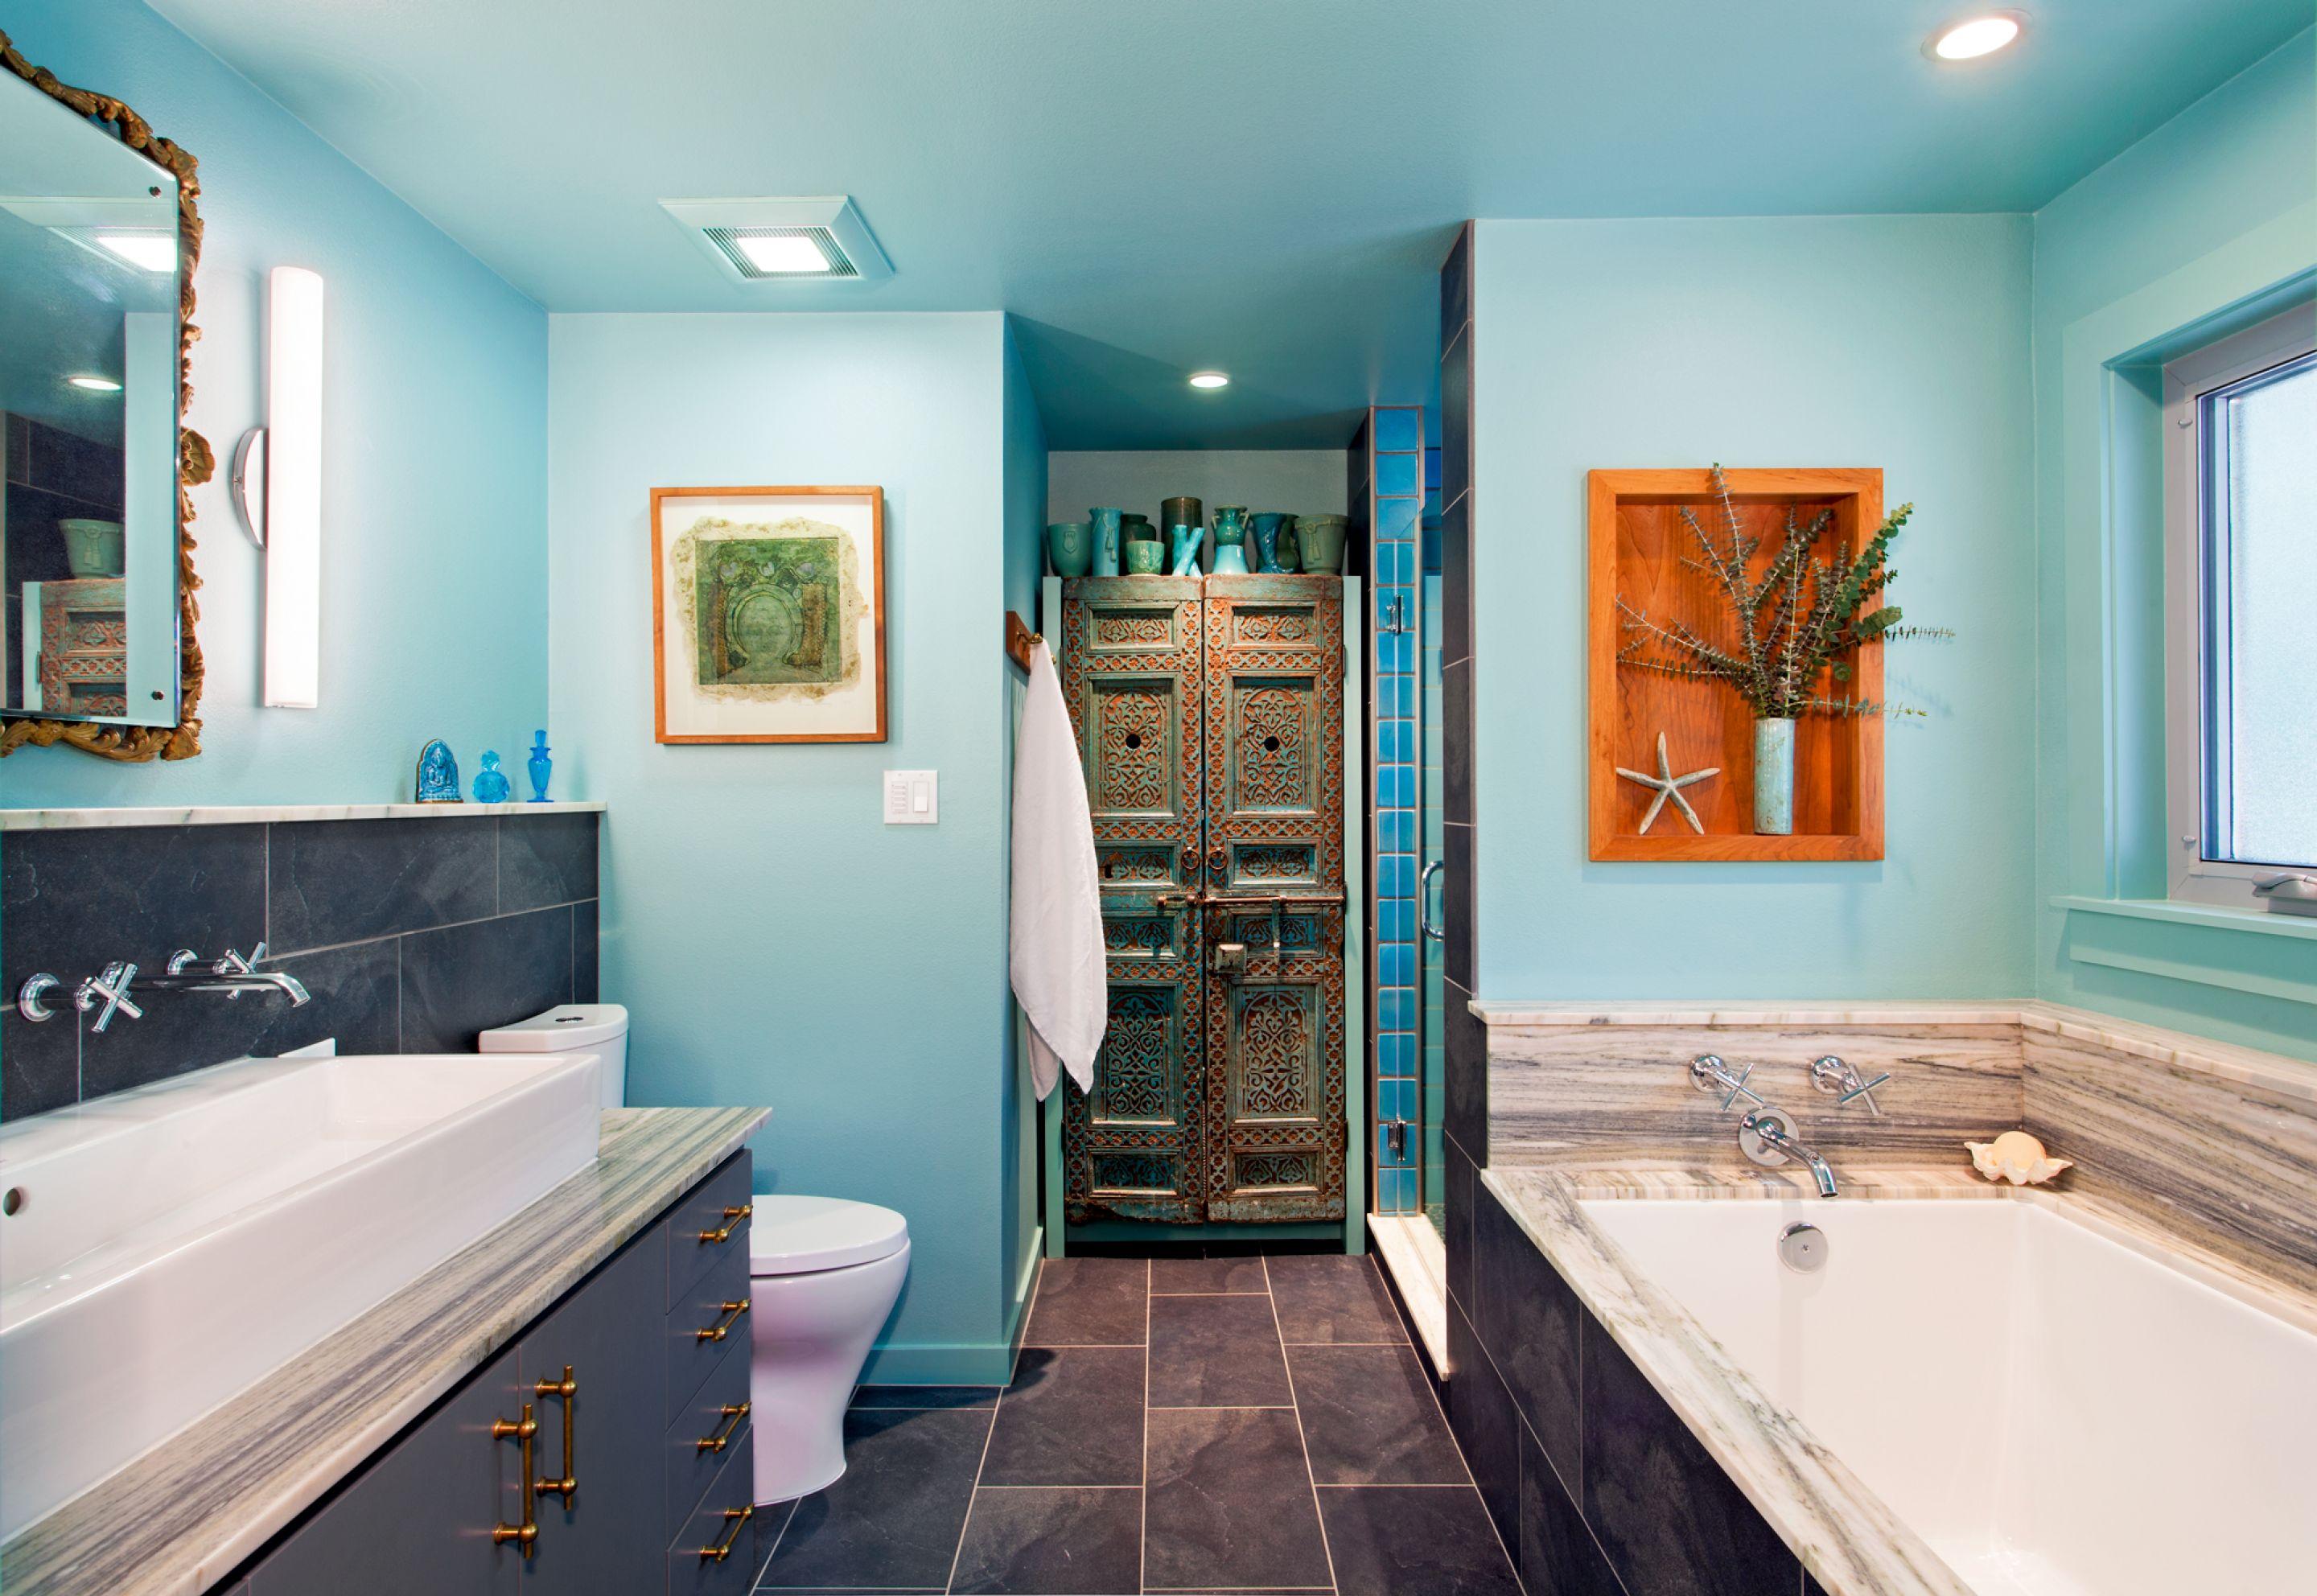 a nautical bathroom of Blue bathroom inspirations for your design project